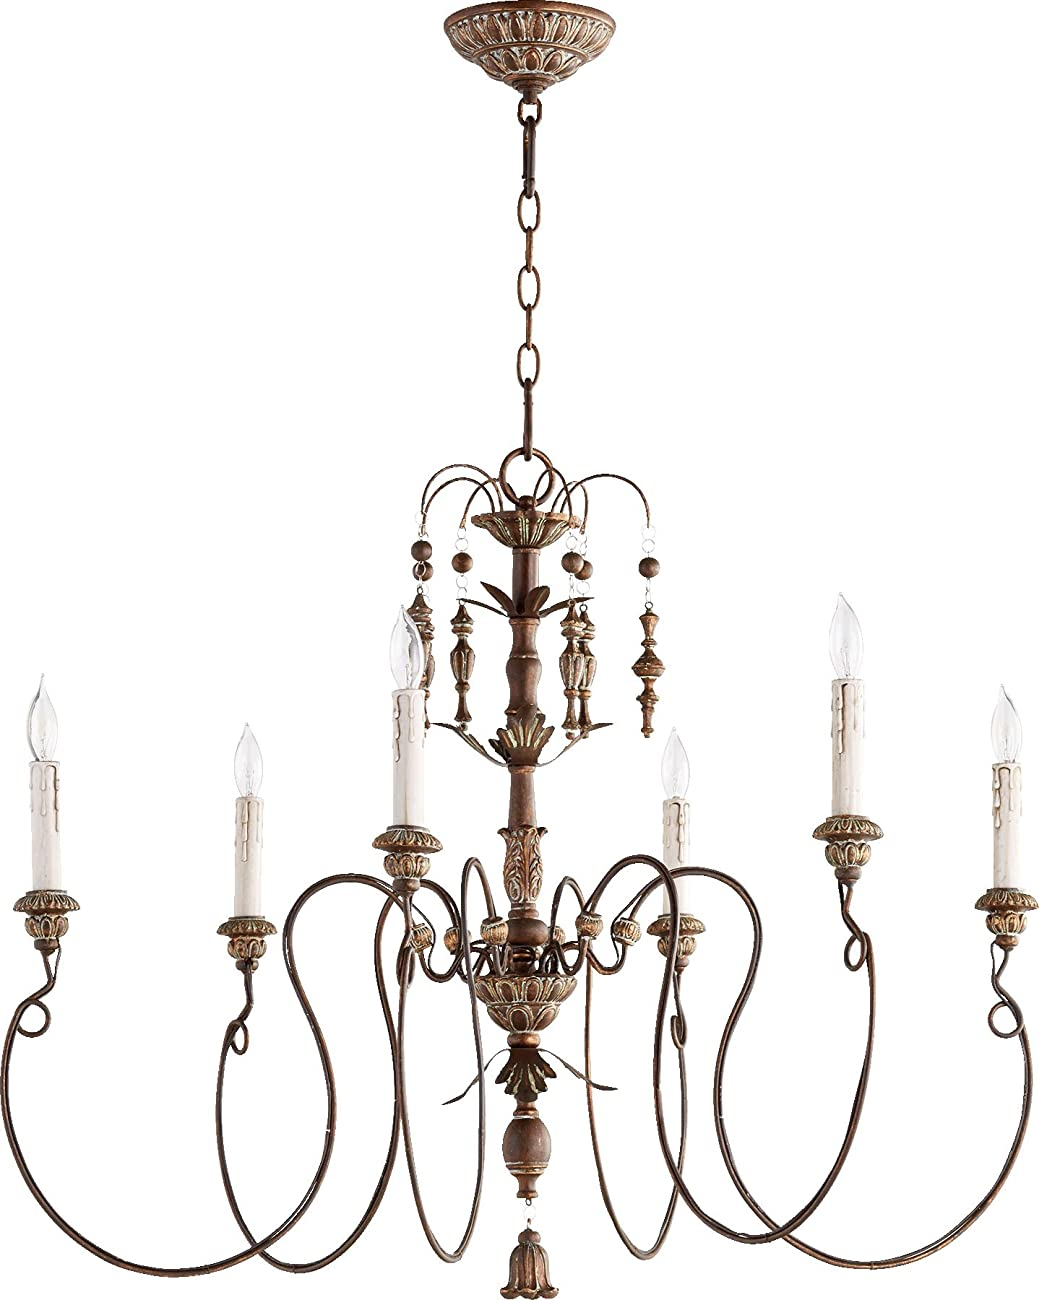 Quorum Lighting 6006-6-39, Salento 1 Tier Chandelier Lighting, 6LT, 120 Watts, Vintage Copper 0